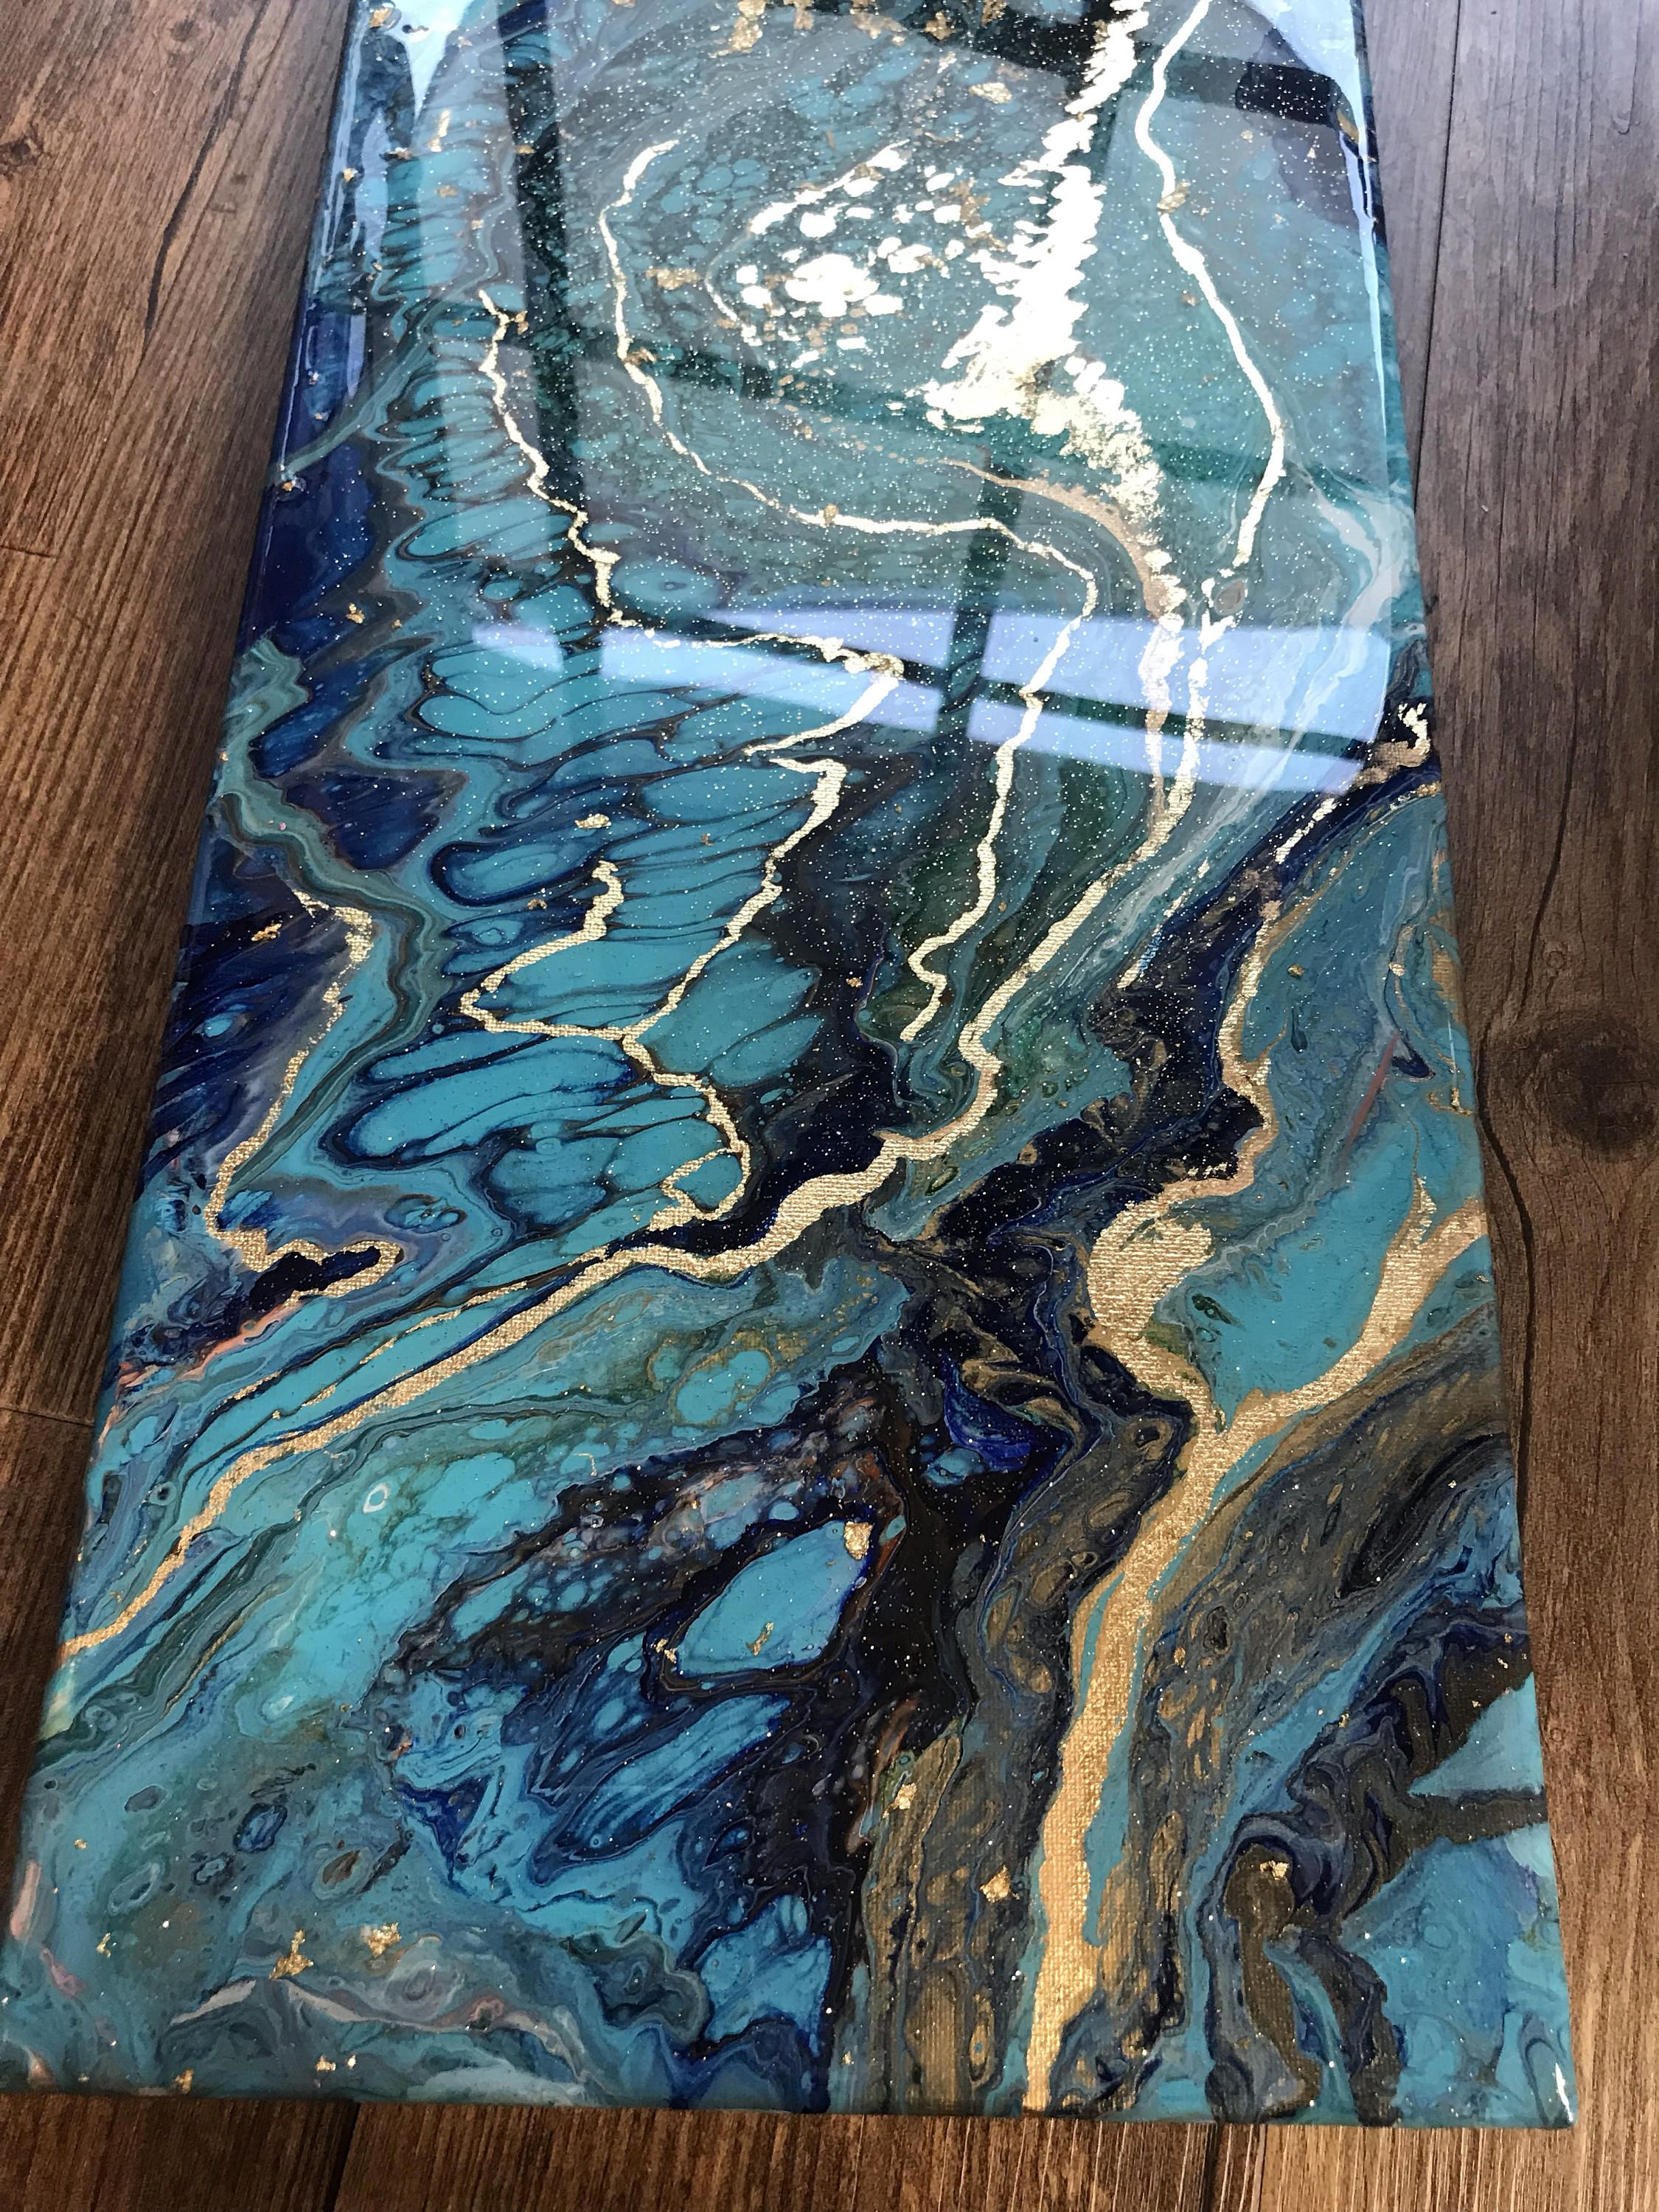 Pouring Pintura This Year I Discovered Abstract Painting Using Fluid